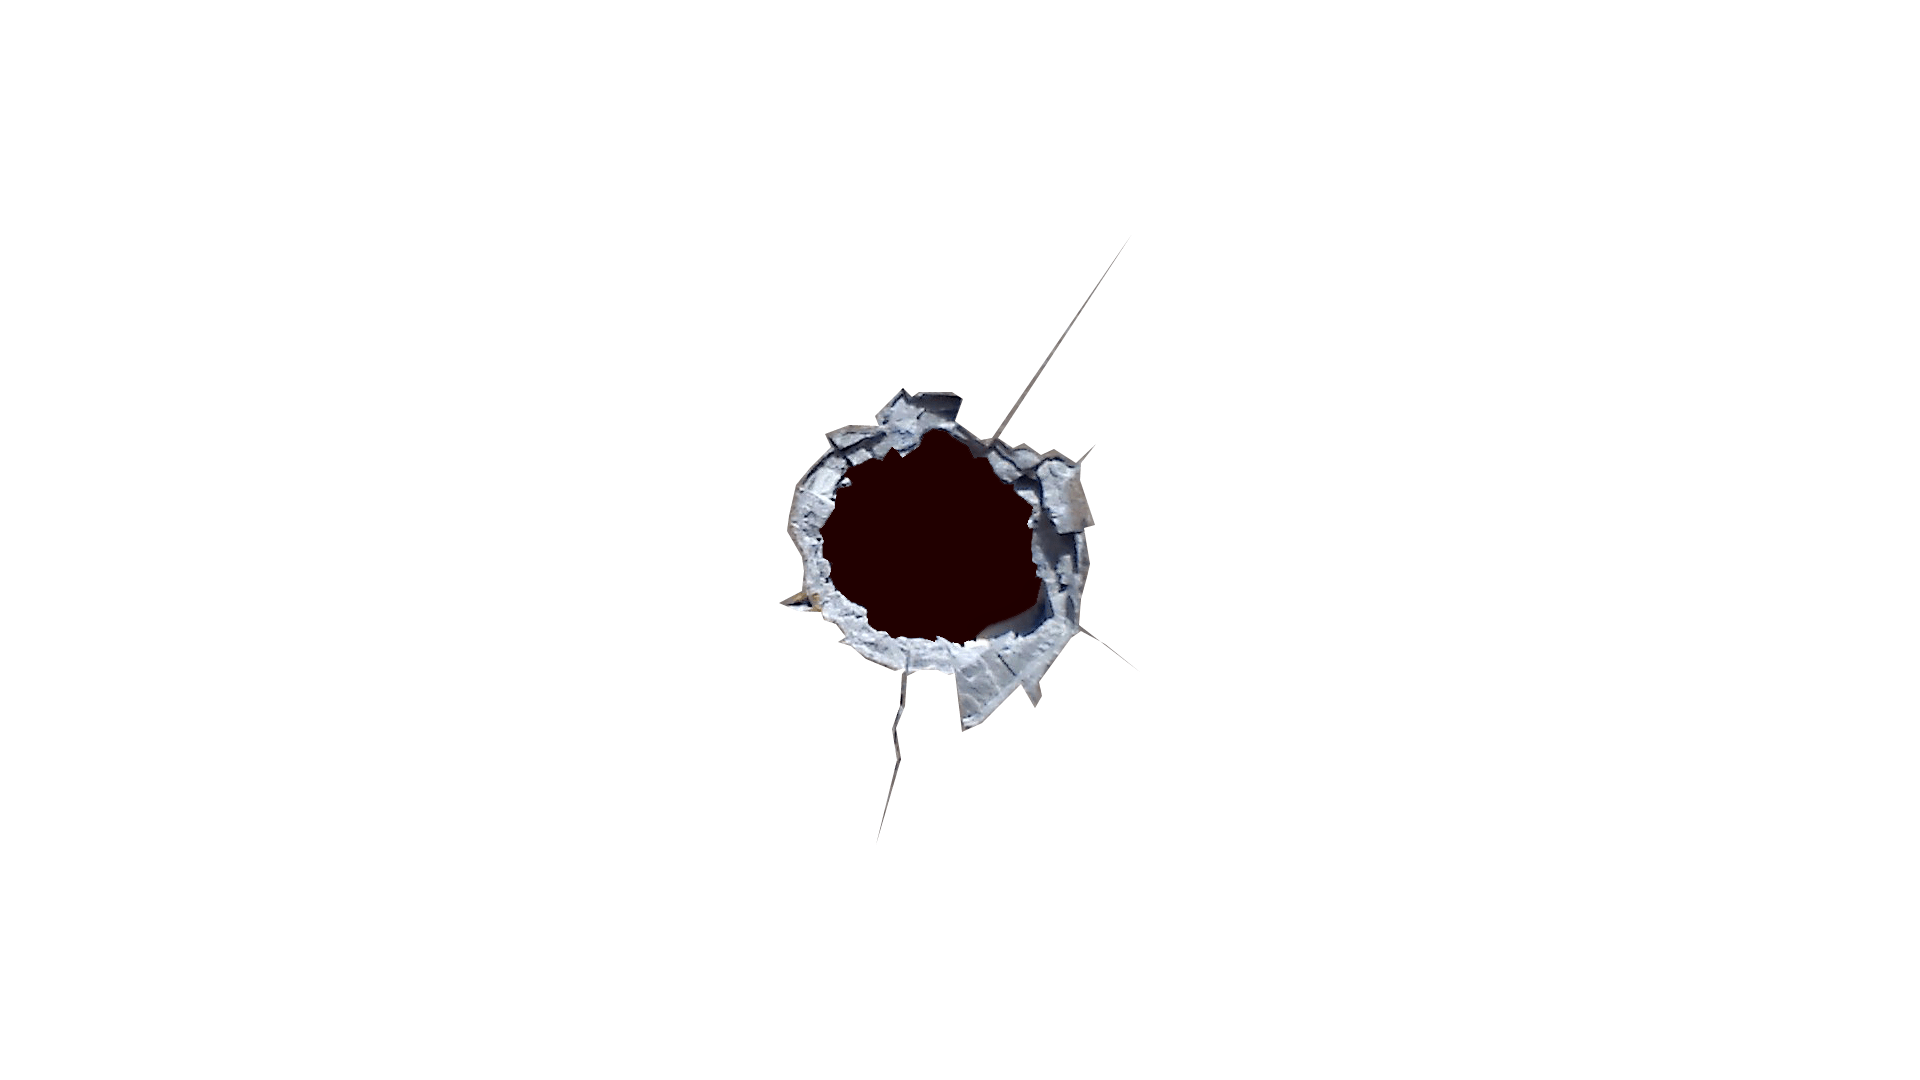 Clipart gun hole. Bullet collection in metal